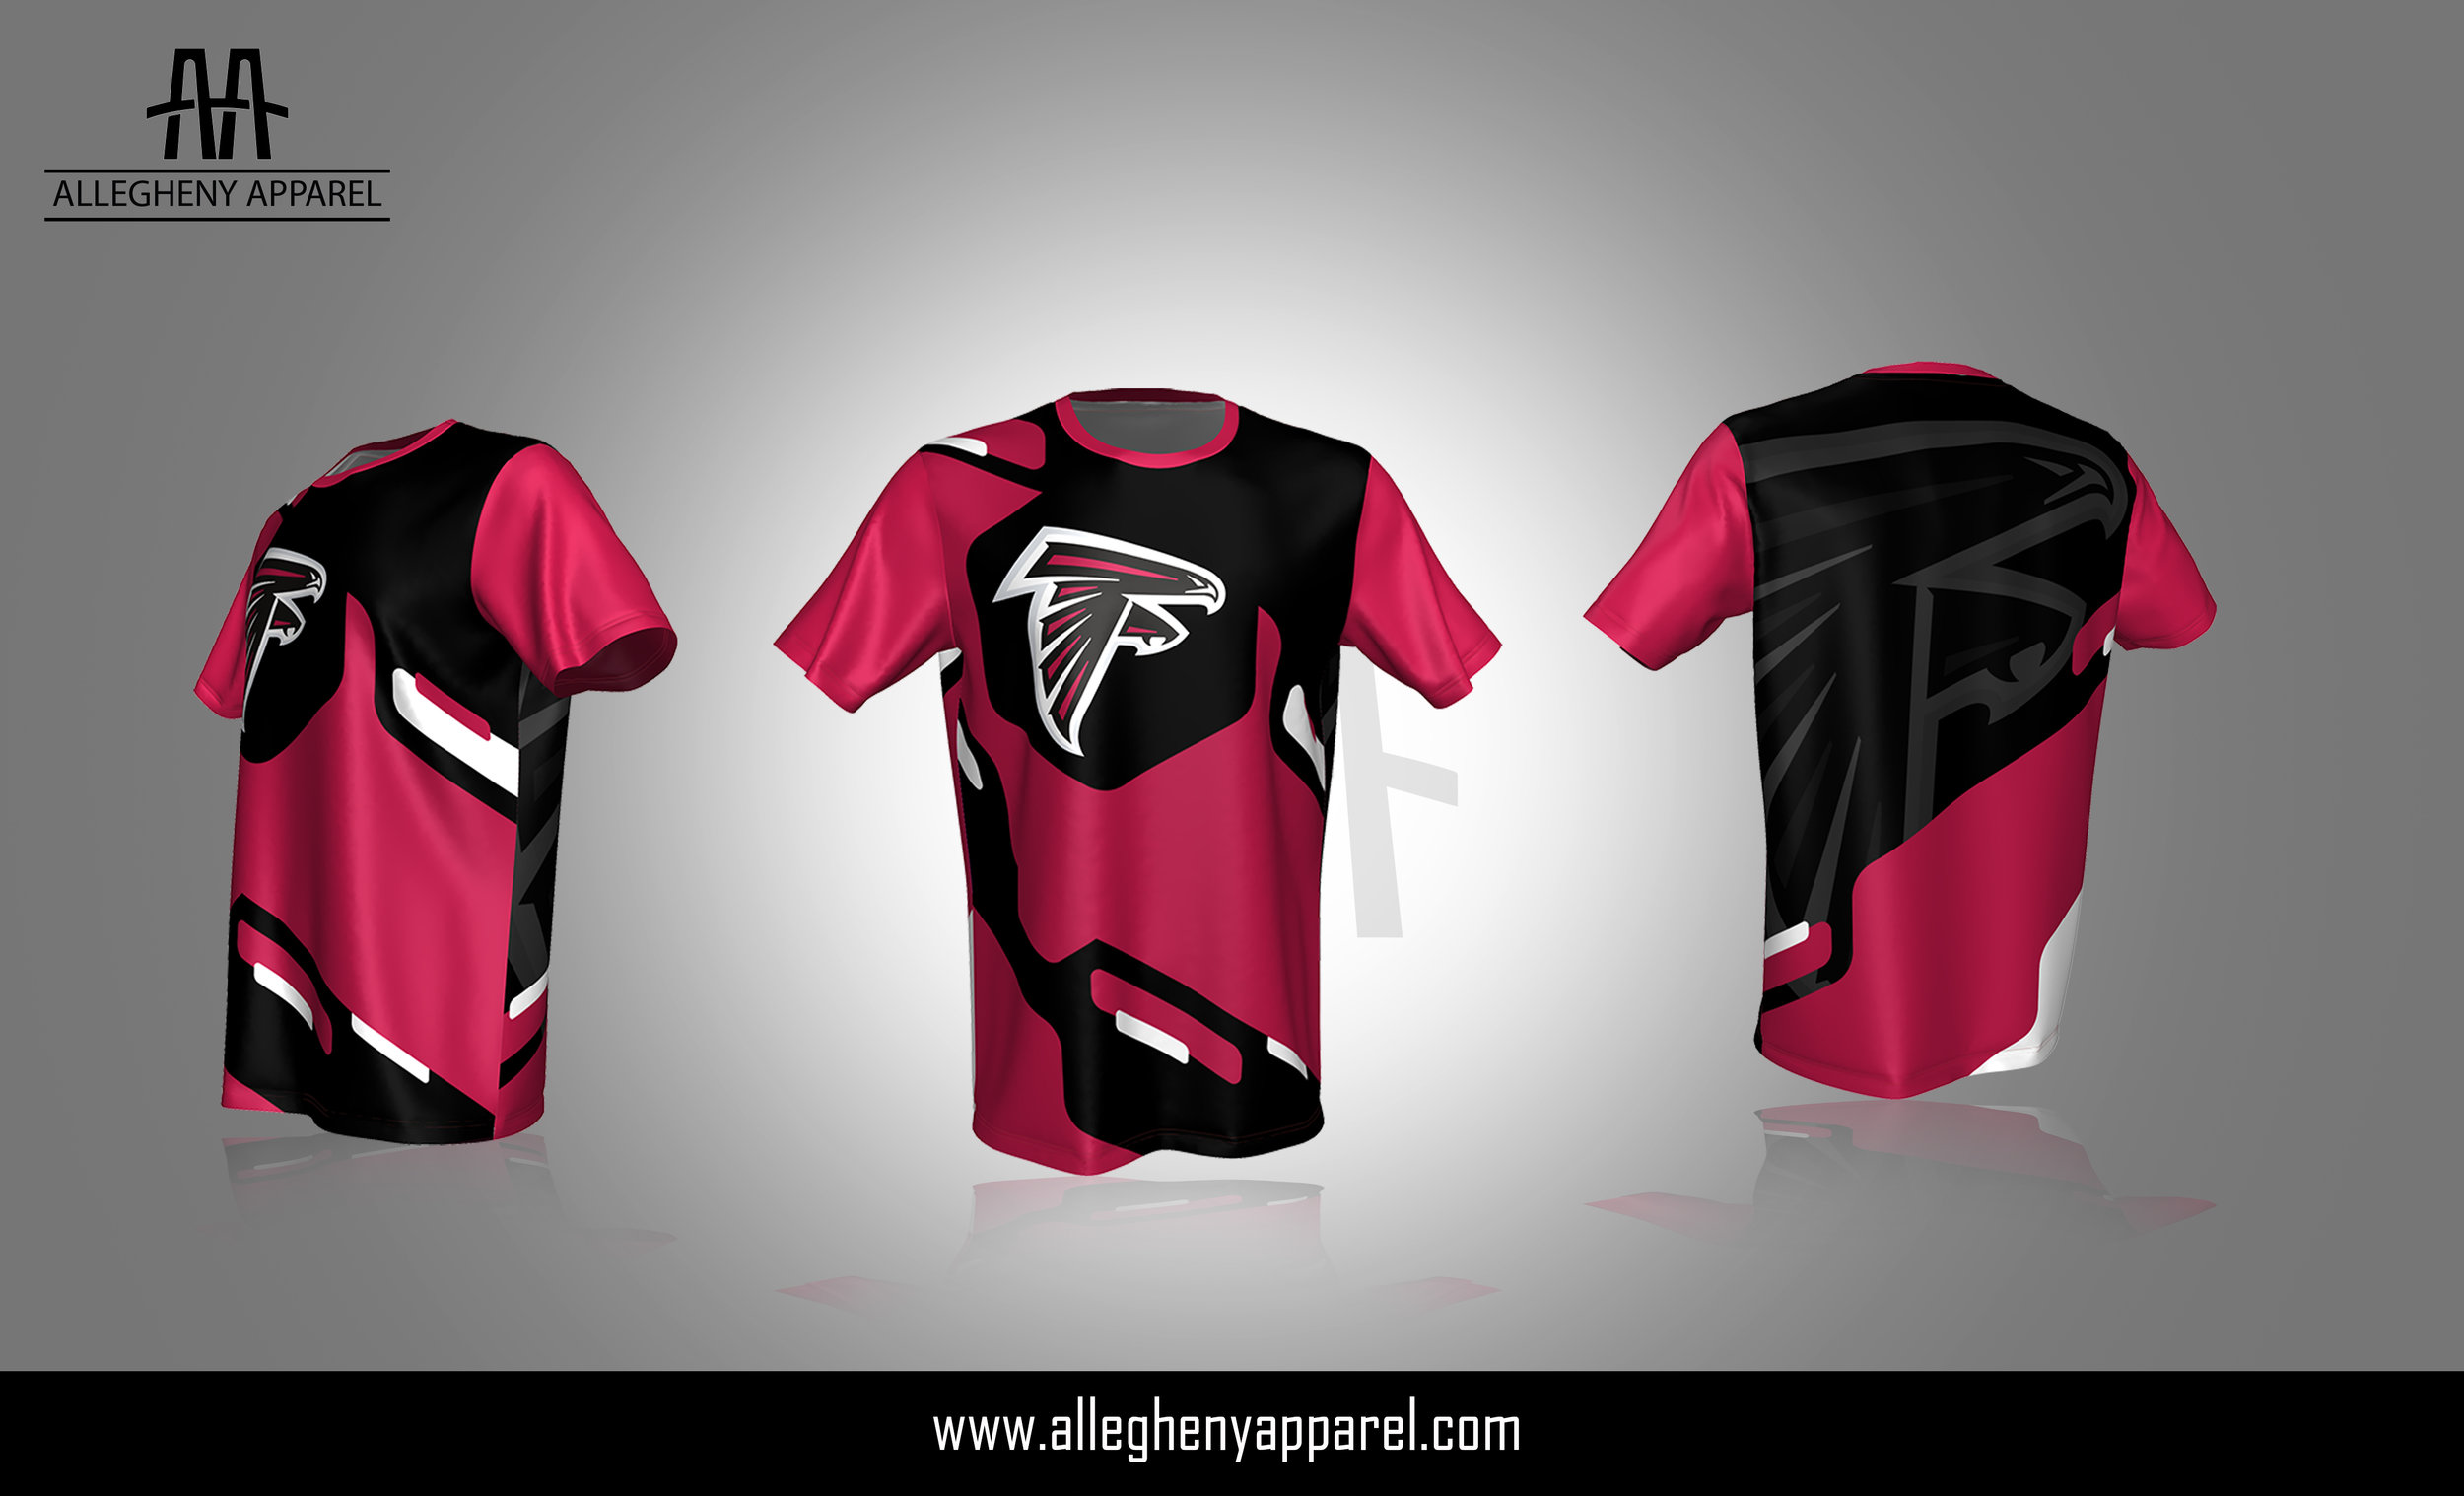 falcons design.jpg